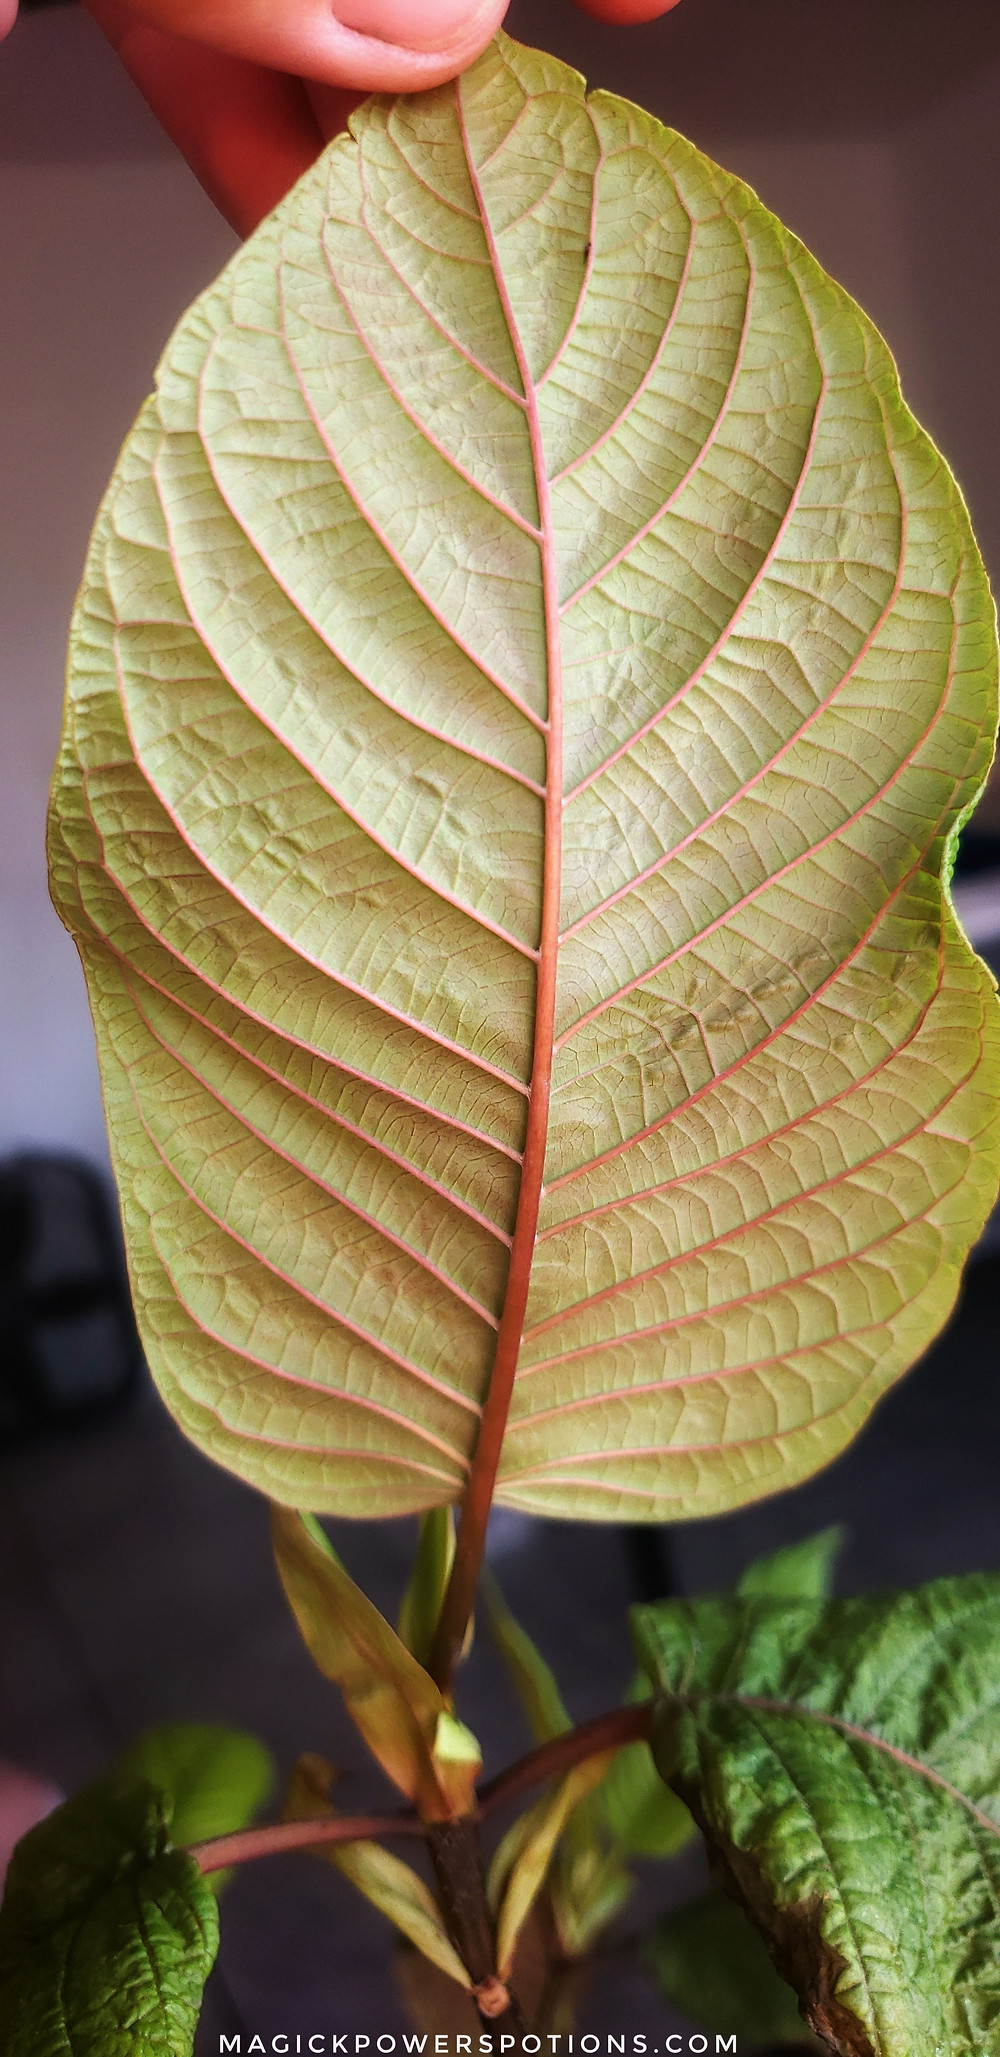 A close up of a heathy leaf underside. Notice the strength of form, beautiful colors and clean surface free from discolorations, bruising and pests. This leaf is still in the process of unfolding and its individual cells still have visible room to stretch.